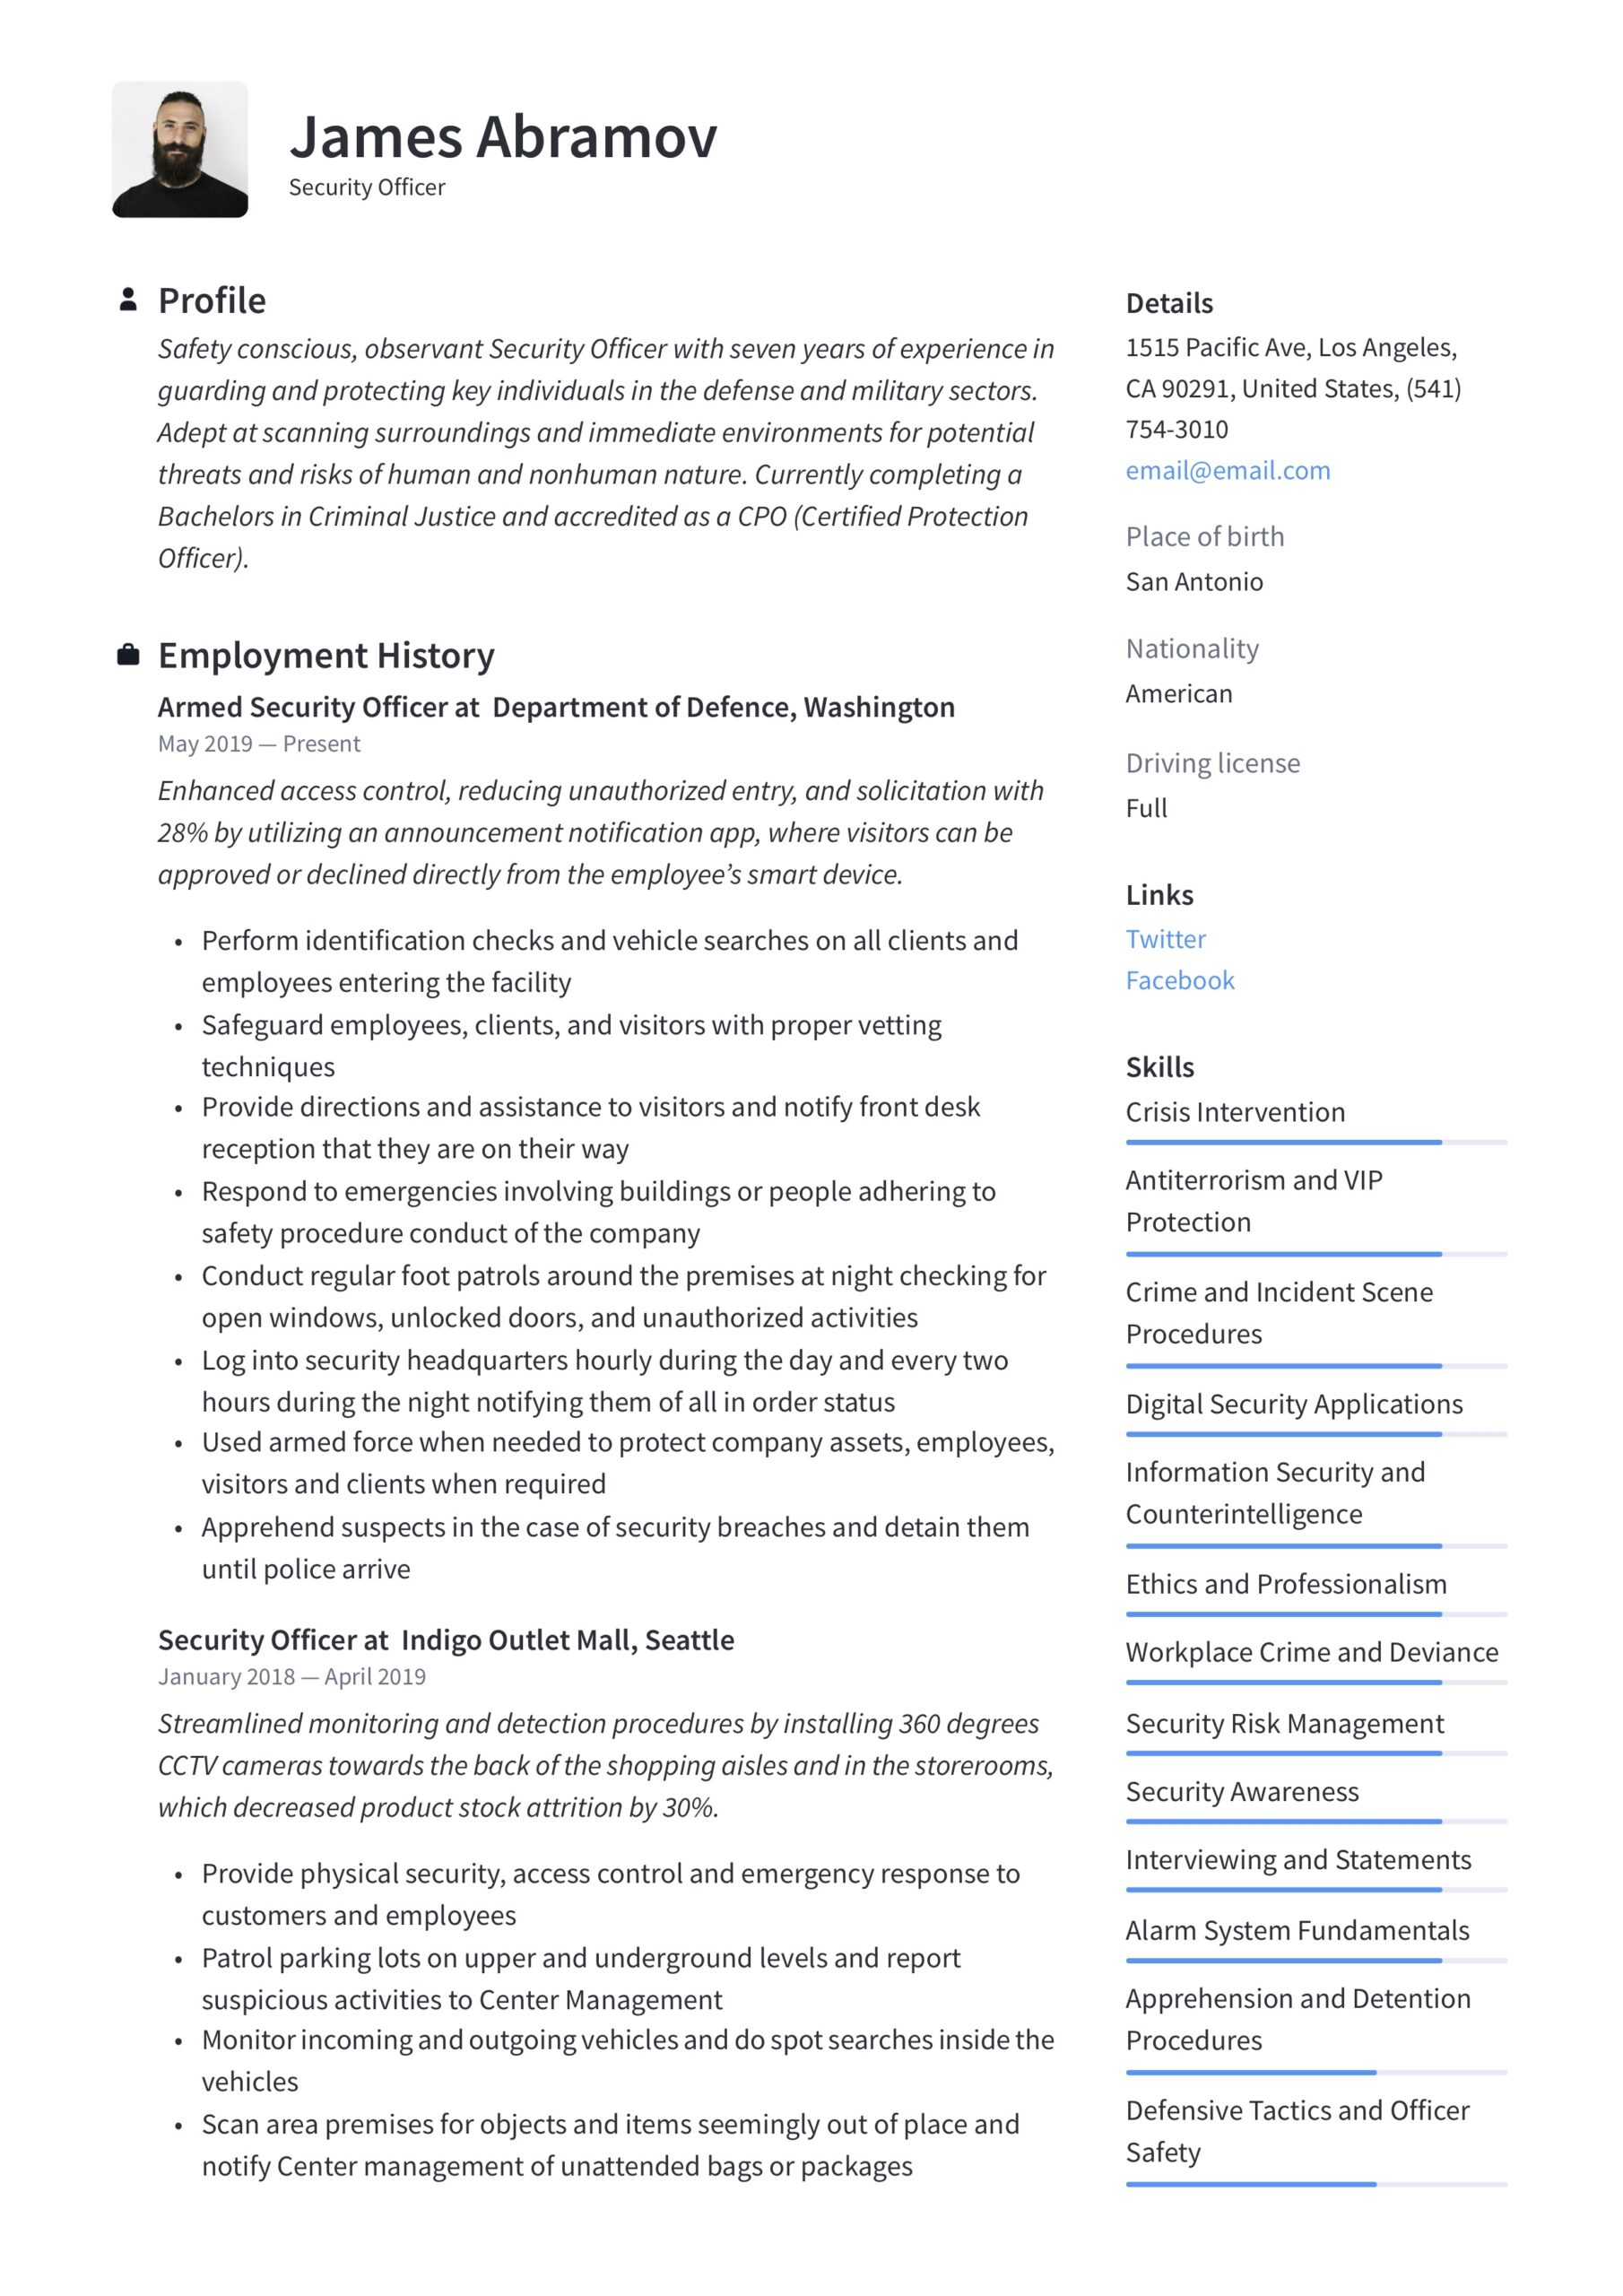 security officer resume writing guide examples field case manager assistant Resume Security Field Officer Resume